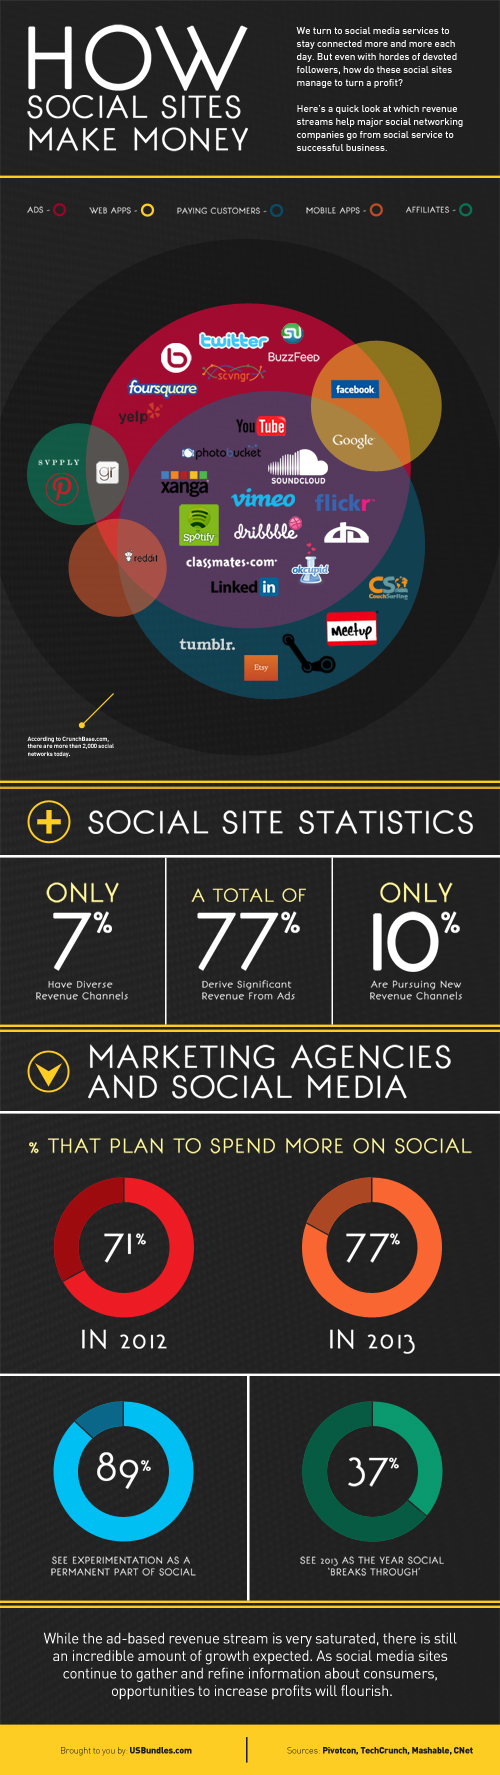 How Social Sites Make Money [Infographic]